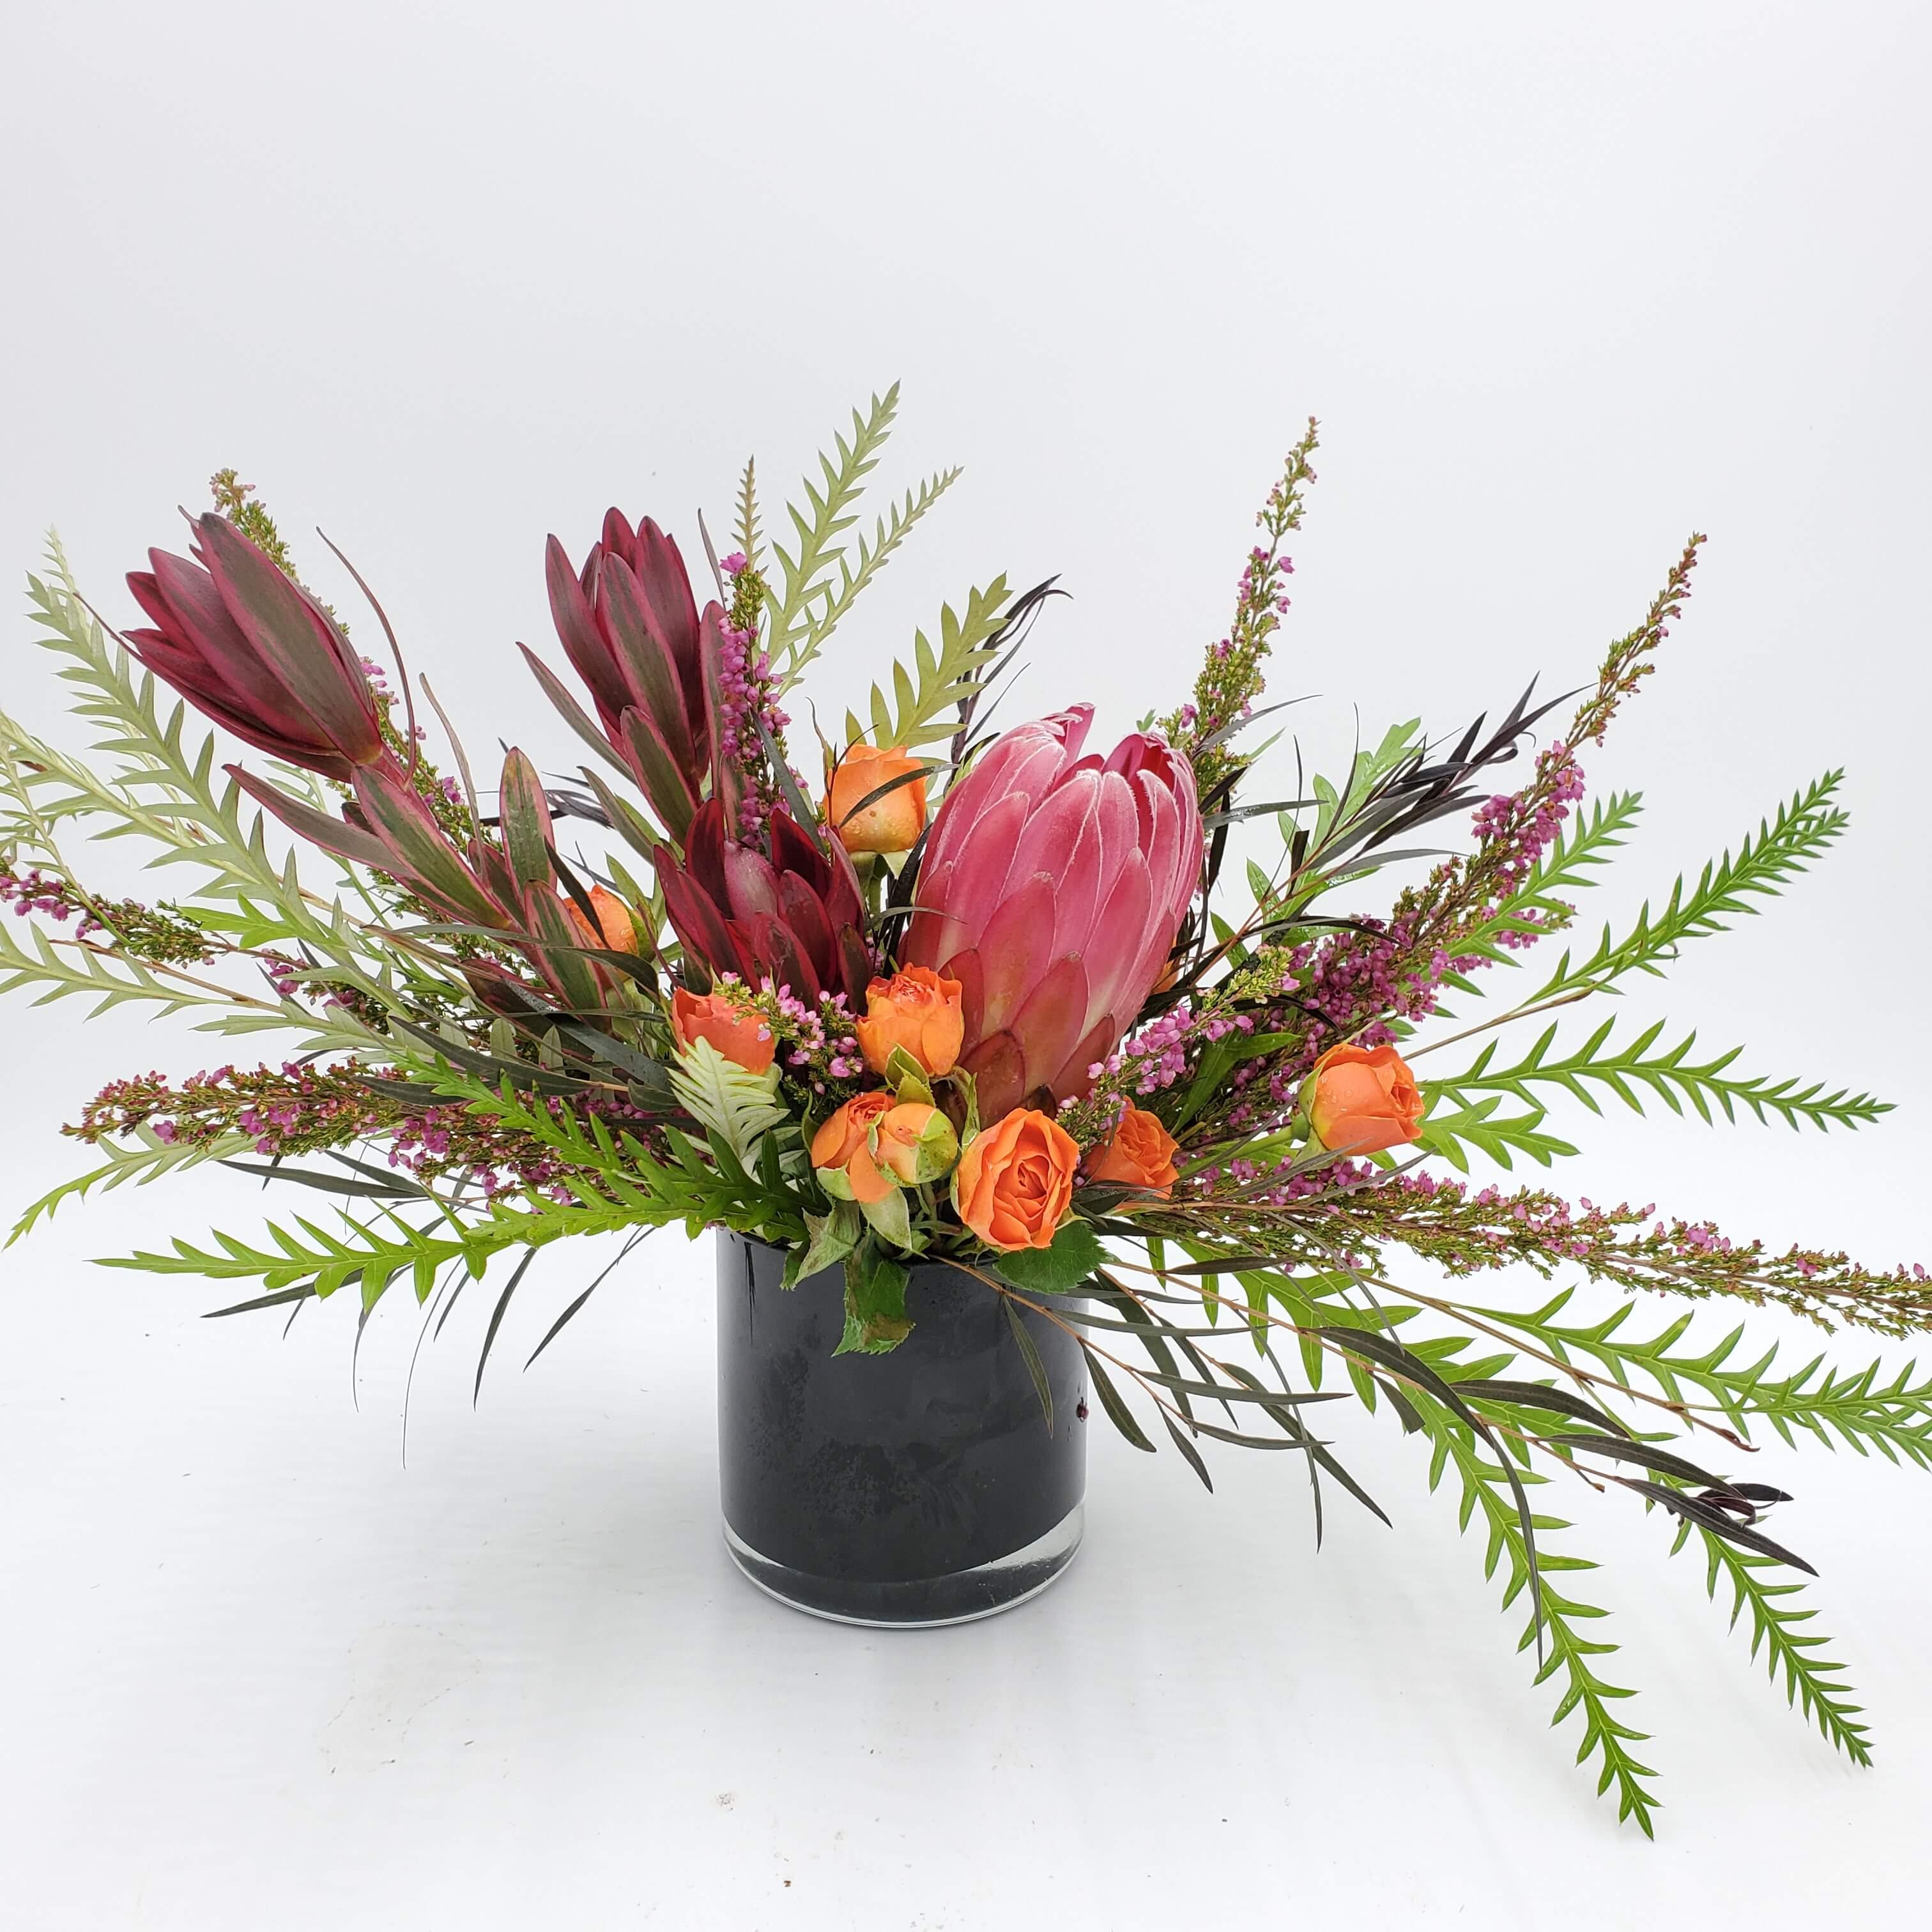 Naturalistic floral design pinks and oranges